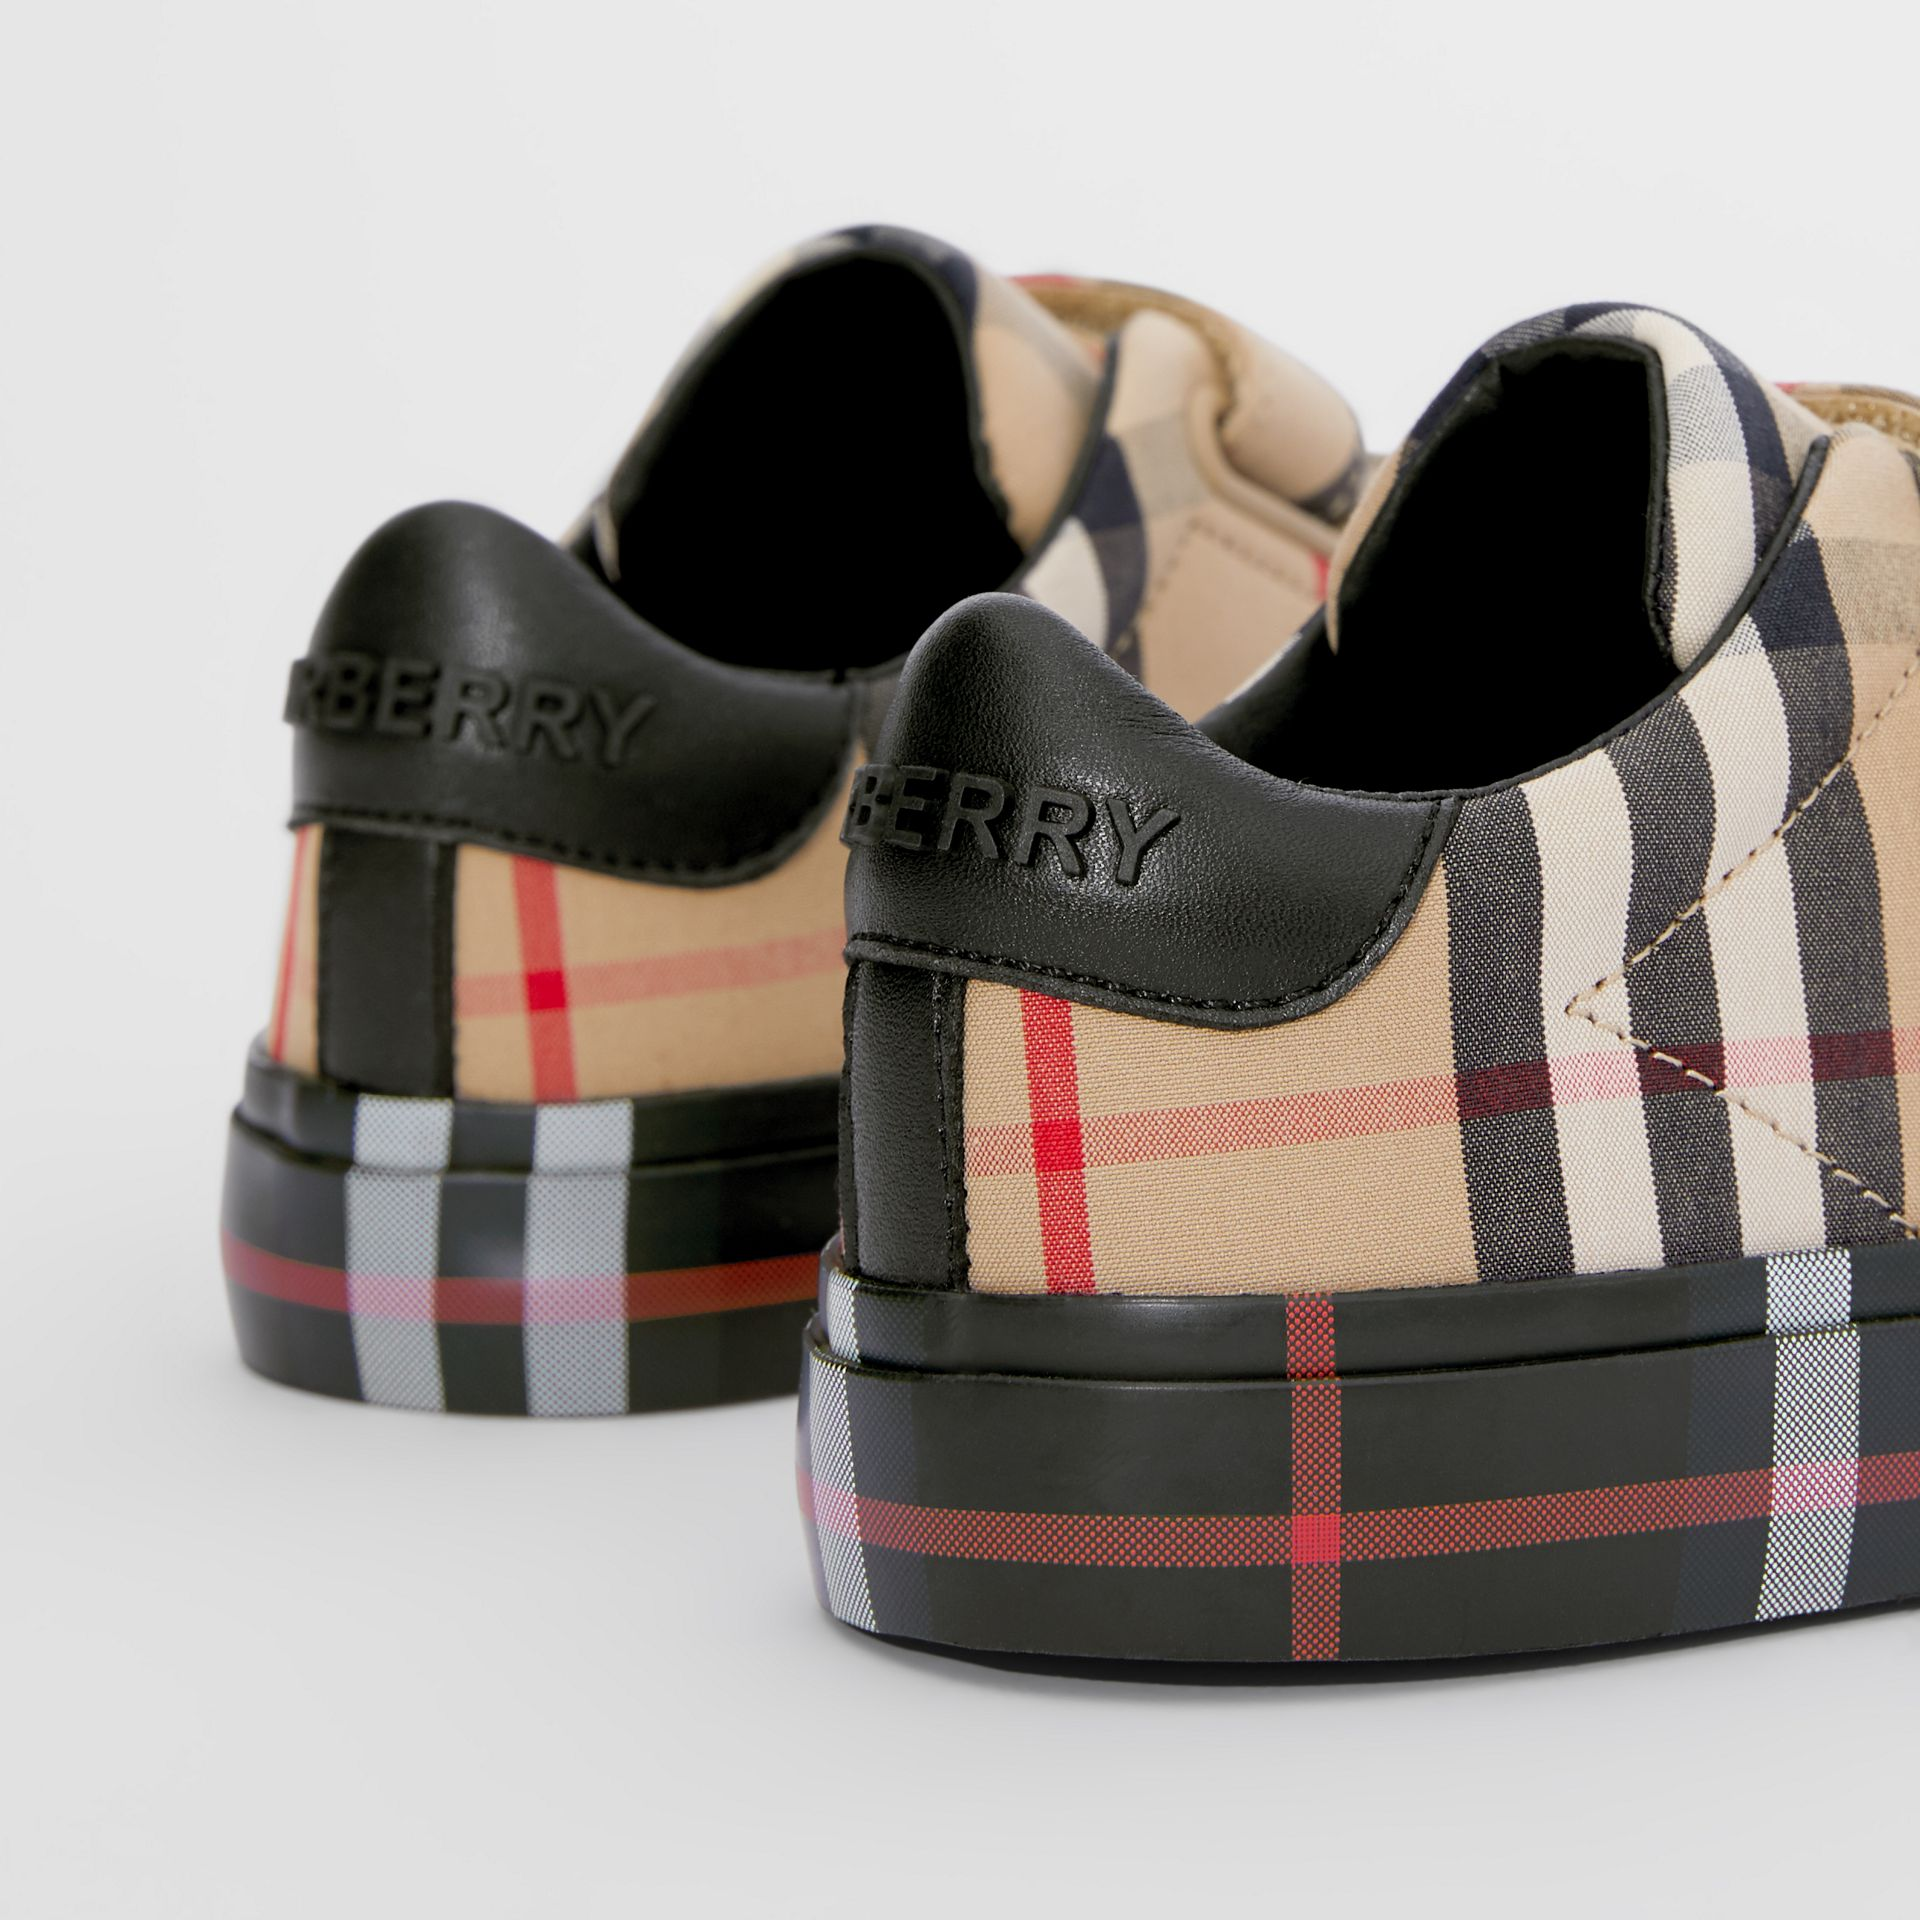 Sneakers en coton check (Beige D'archive/noir) - Enfant | Burberry Canada - photo de la galerie 1